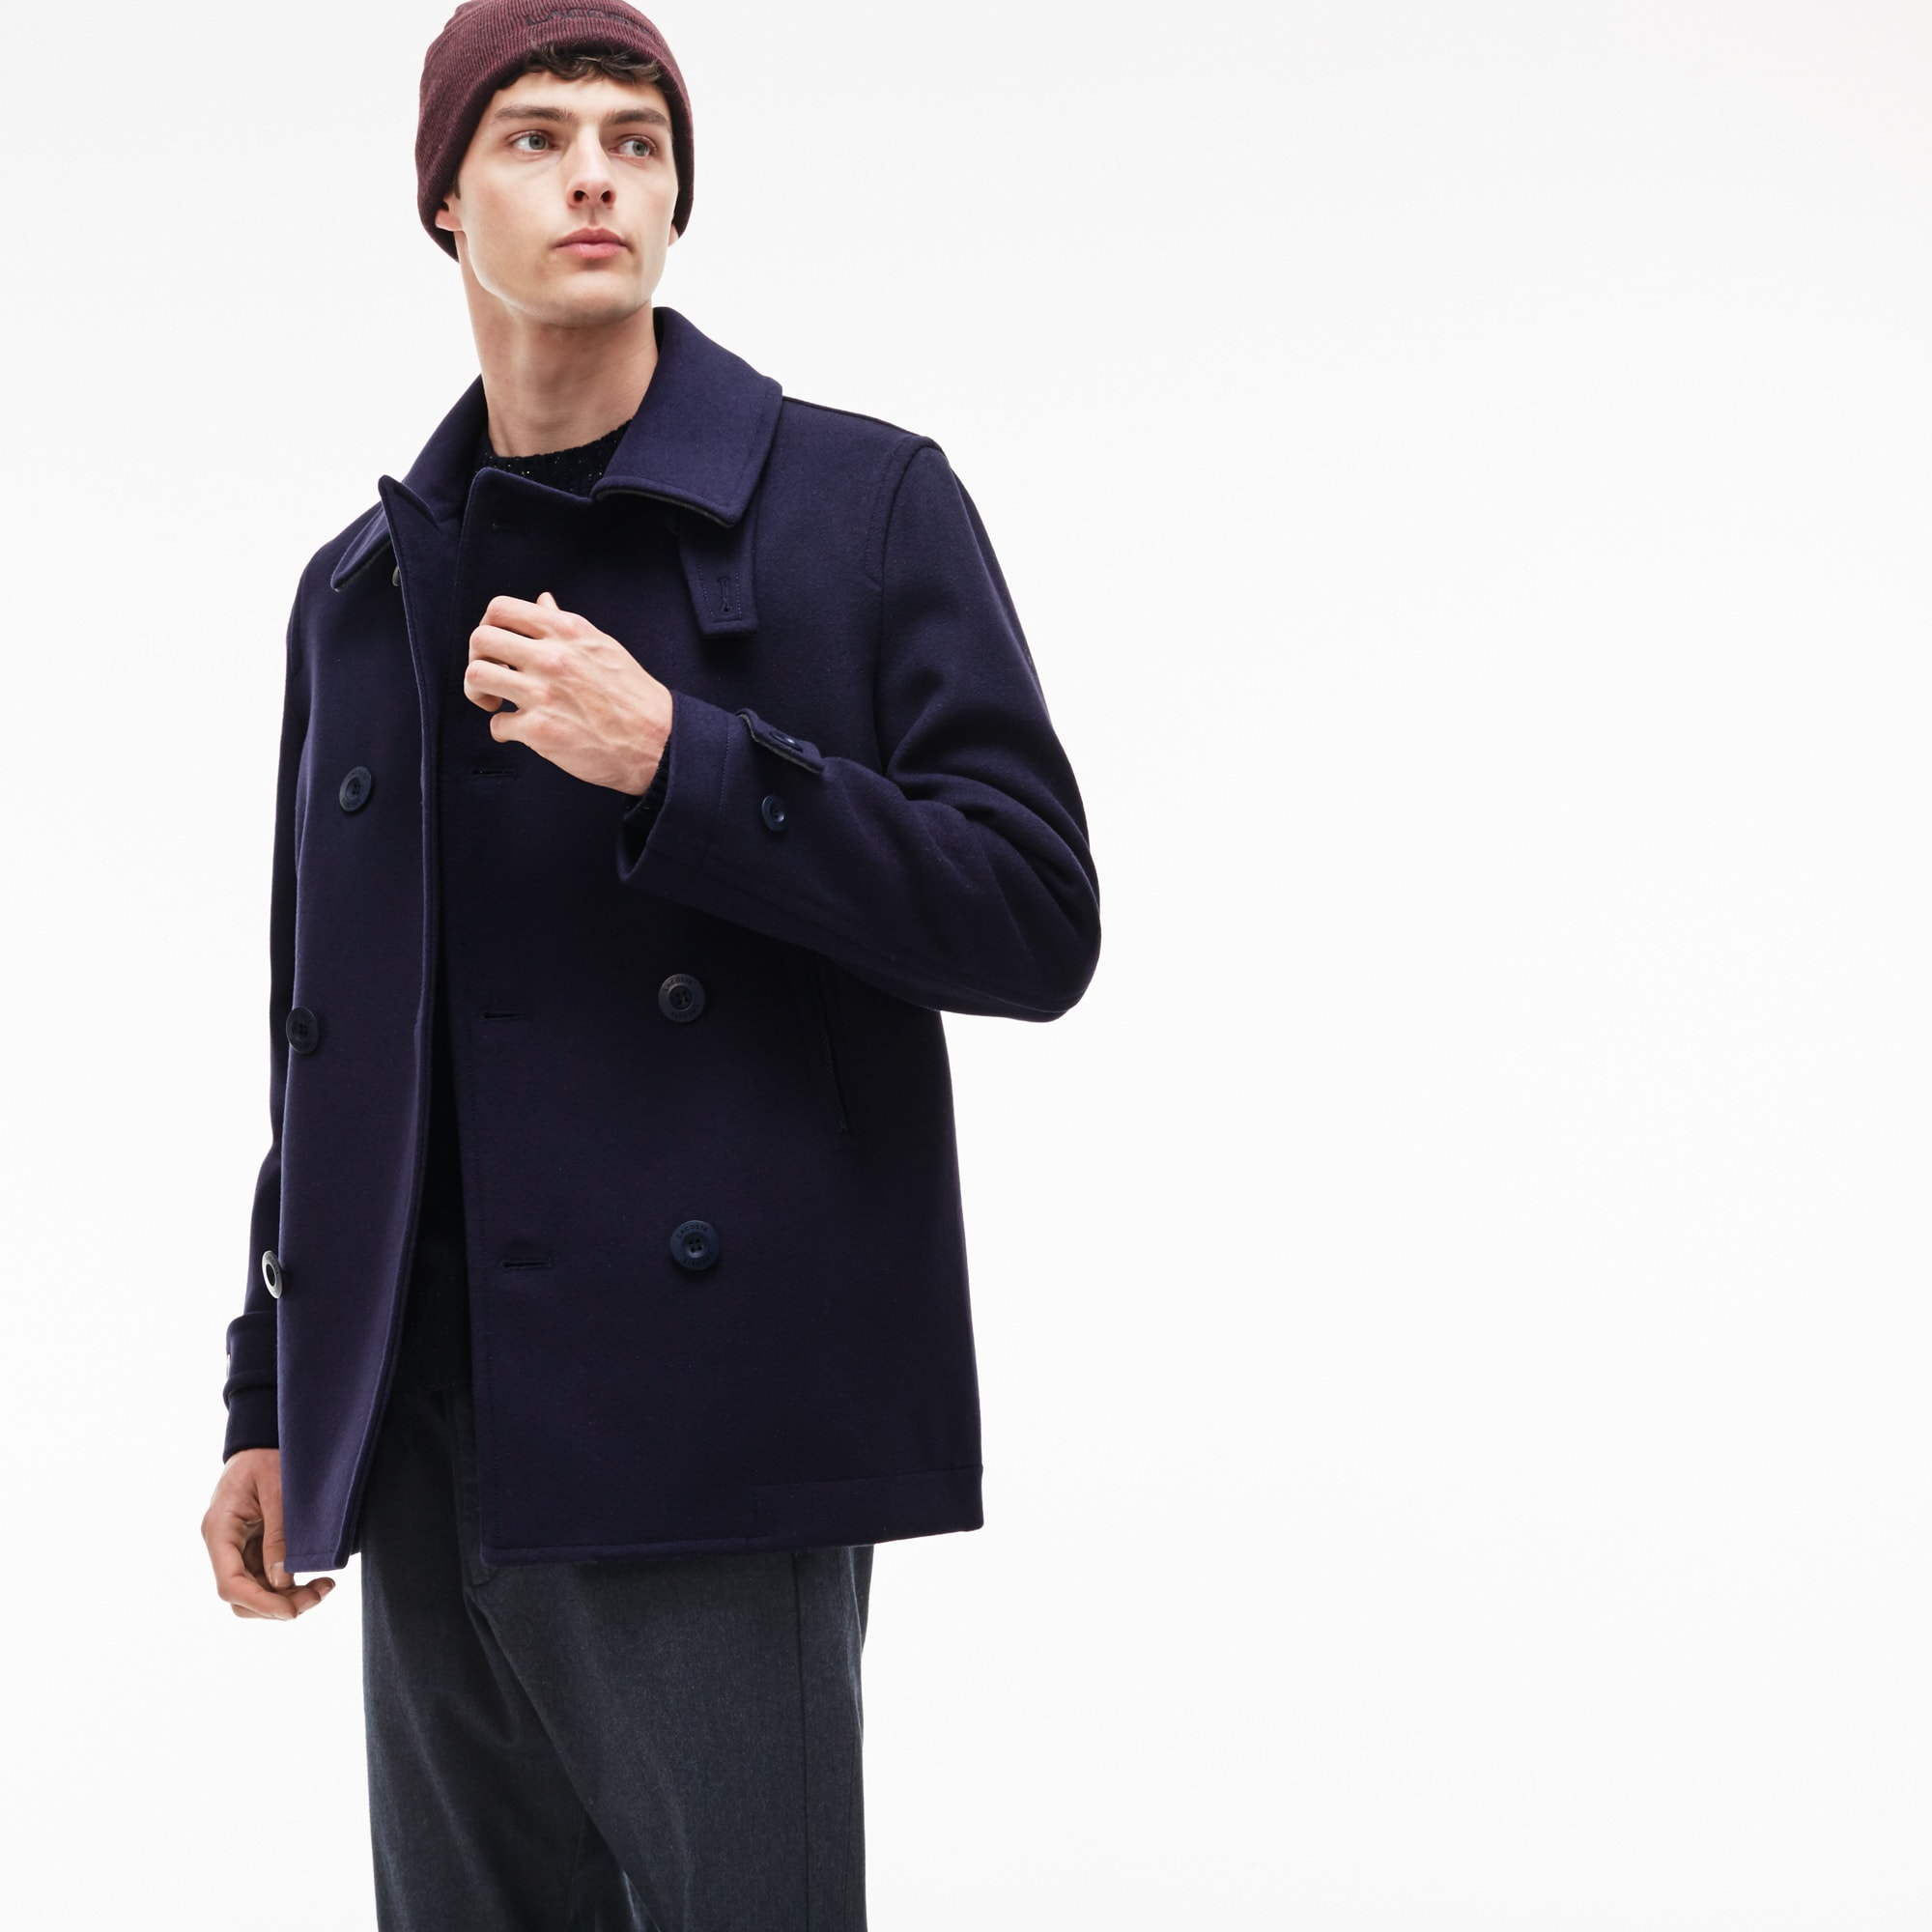 Men's Buttoned Wool Broadcloth Pea Coat